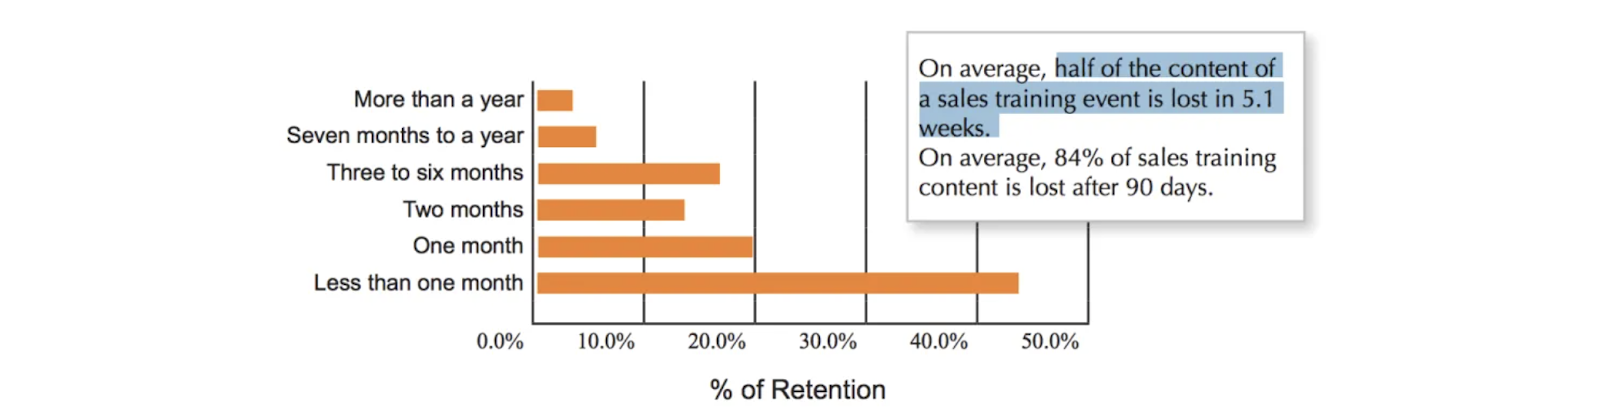 Employee retention graph